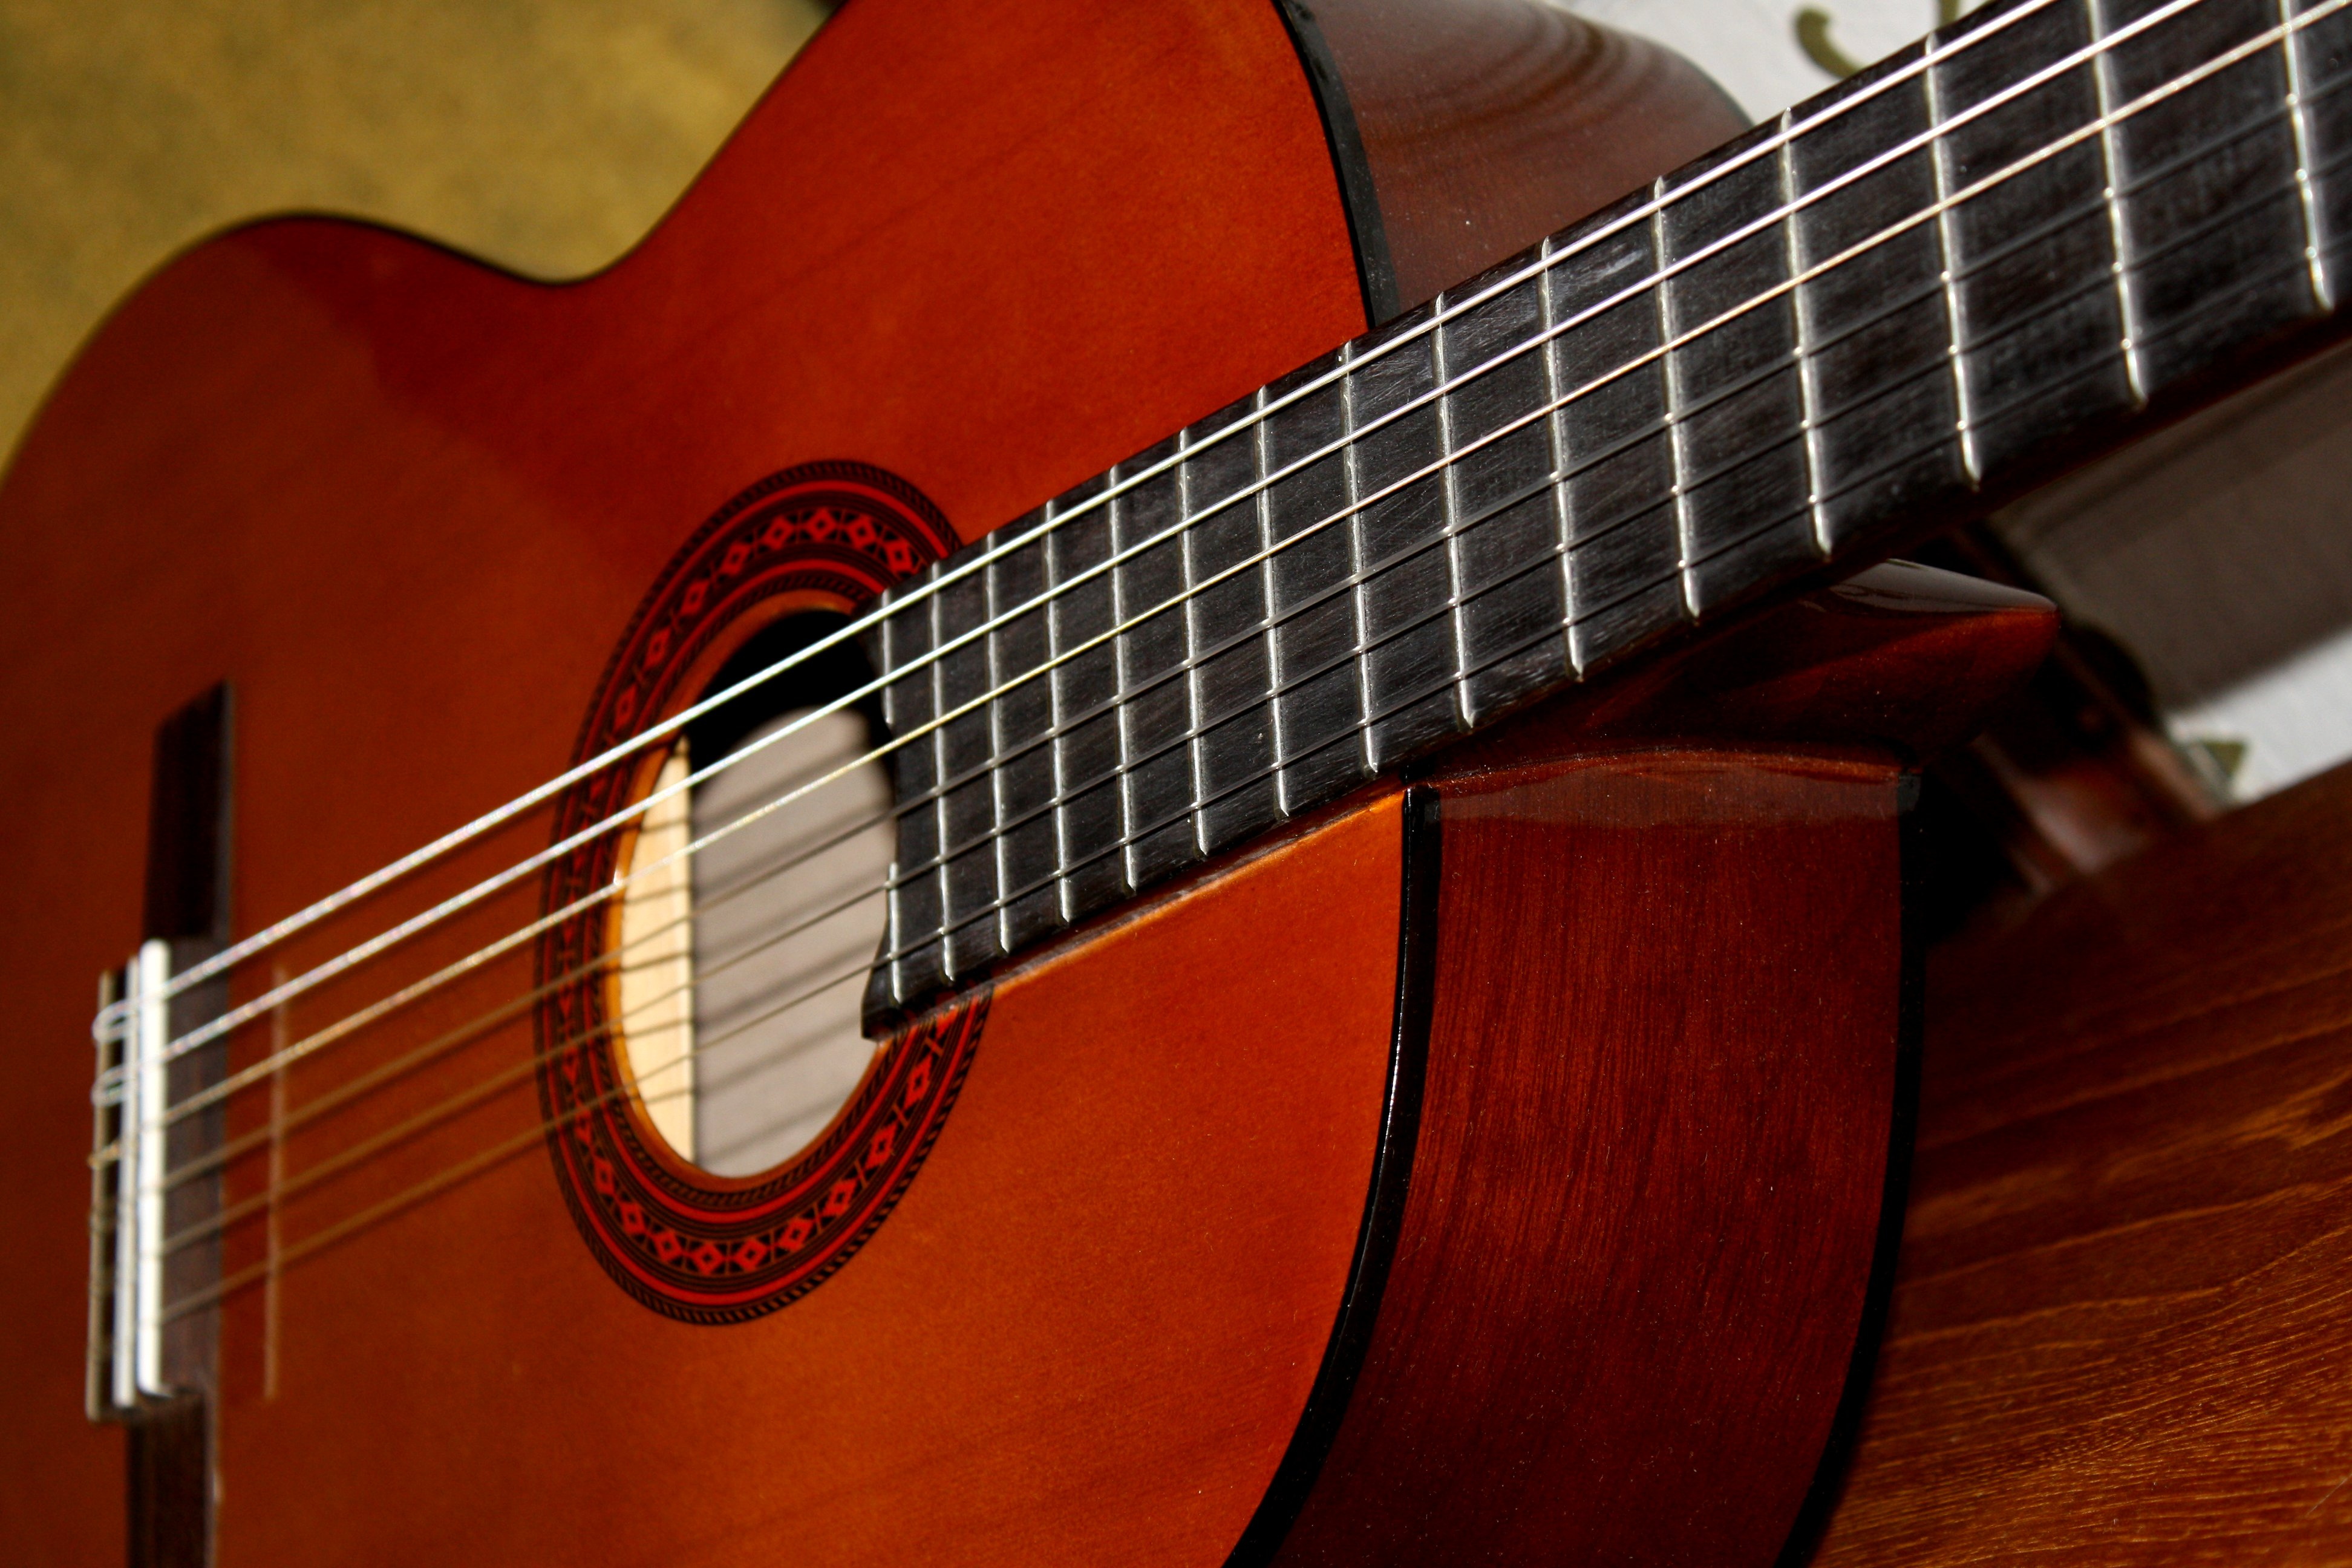 Free Download Classical Guitar High Resolution Photo